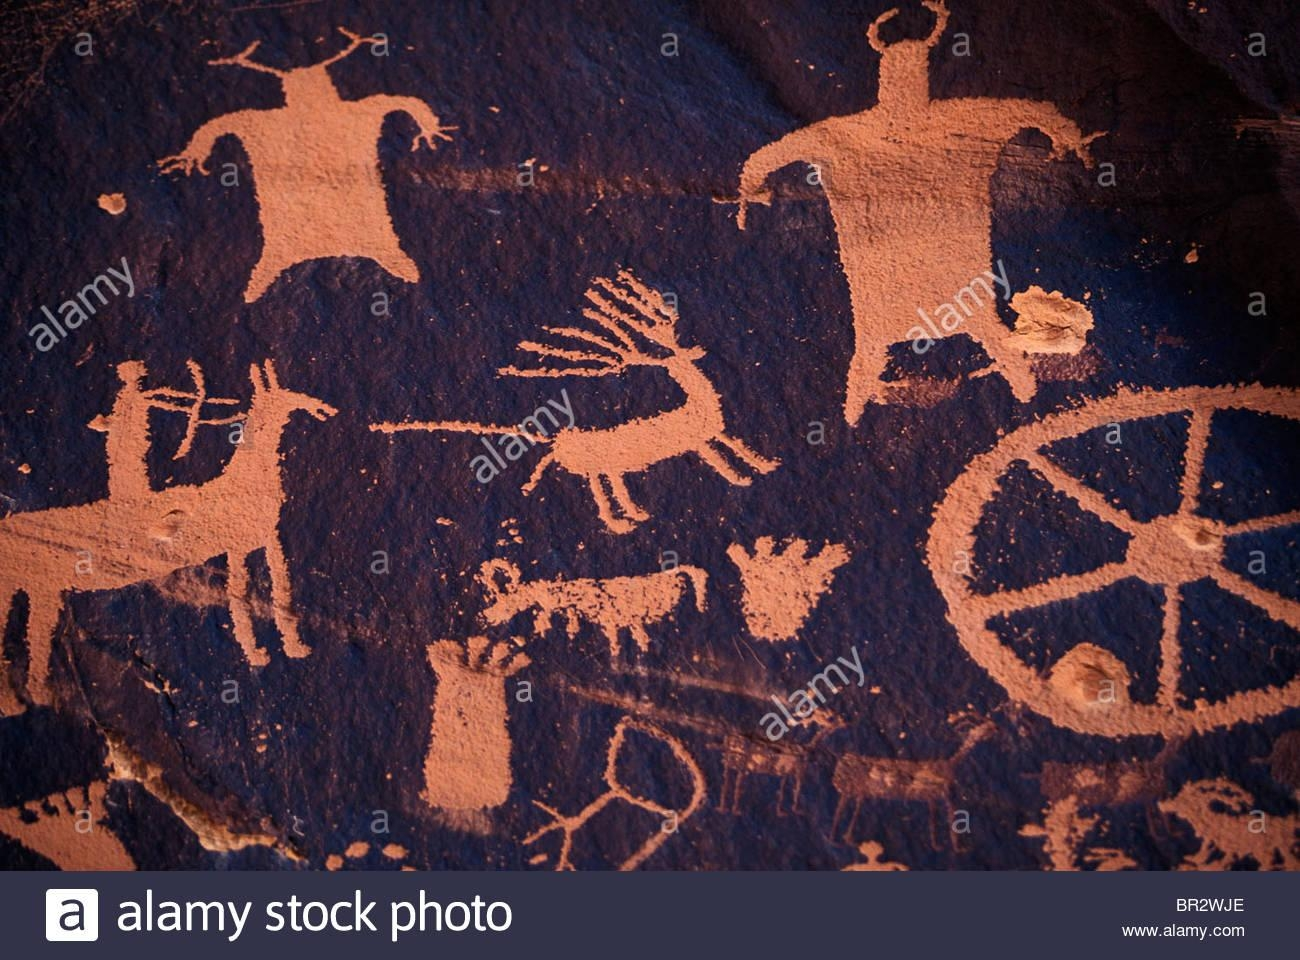 Native American Cave Art/wall Drawings Stock Photo, Royalty Free within Native American Wall Art